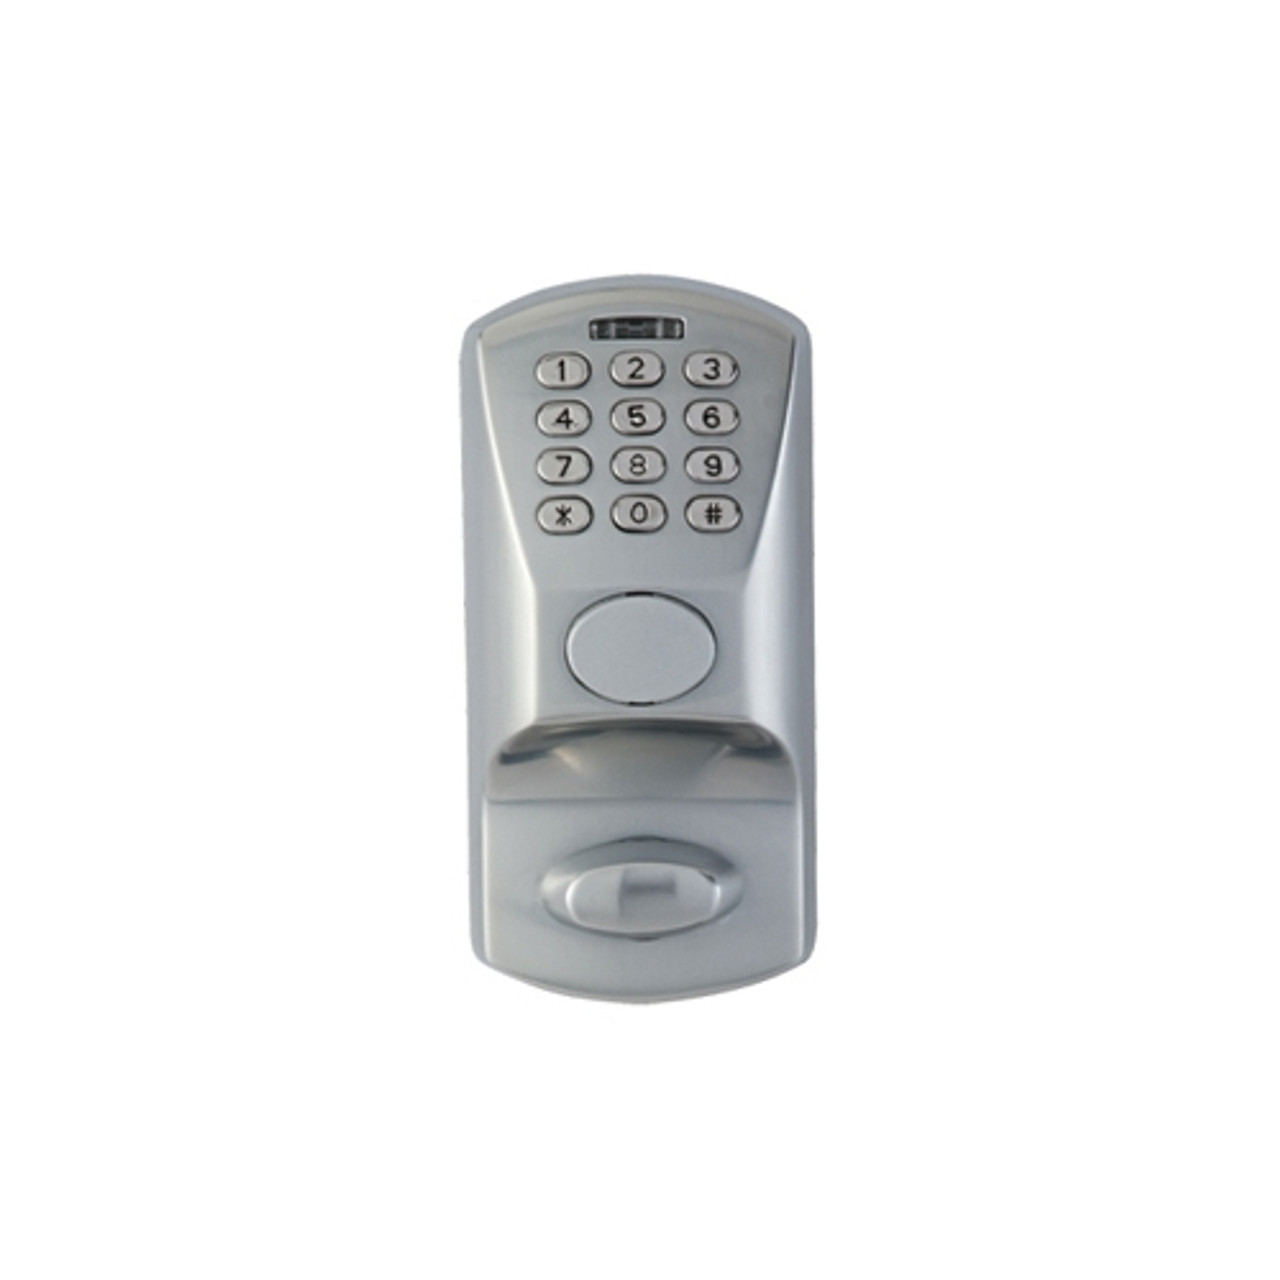 Kaba E Plex E1502 Electronic Deadbolt Lock With Key Override